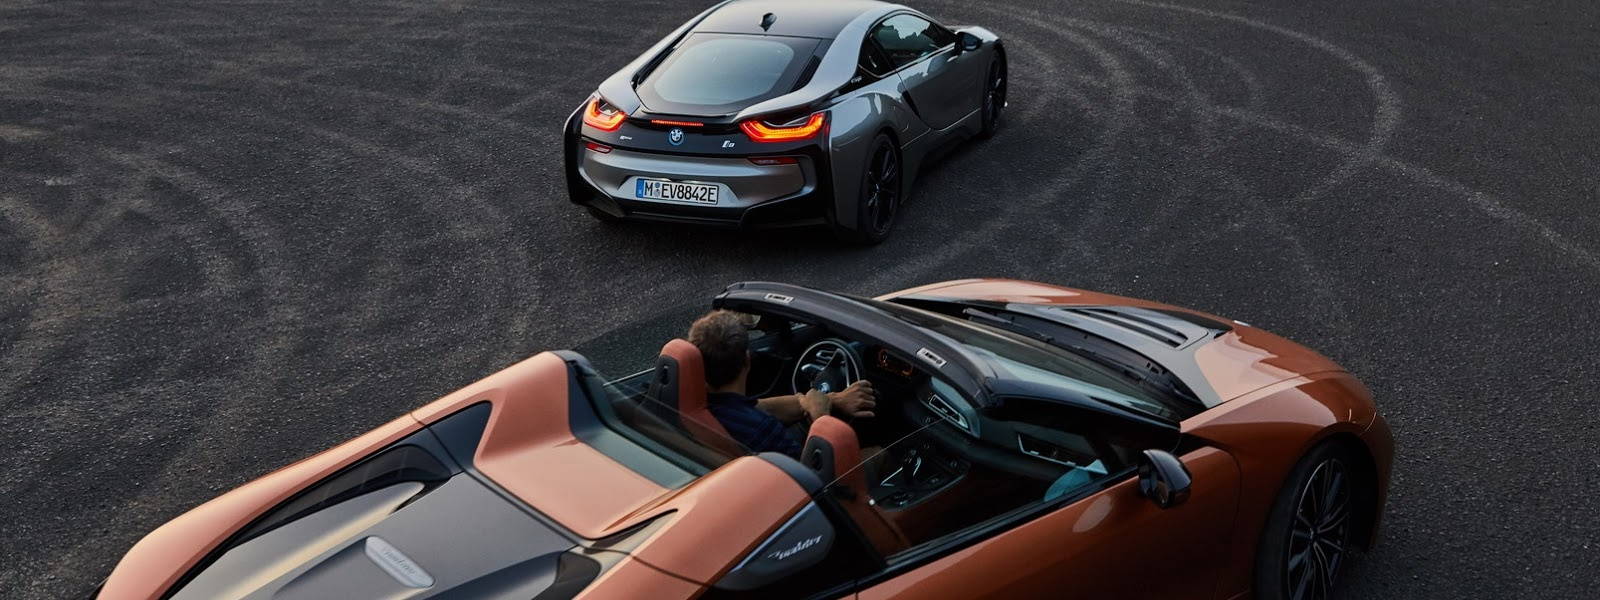 2019-BMW-i8-Roadster-Coupe-60.jpg